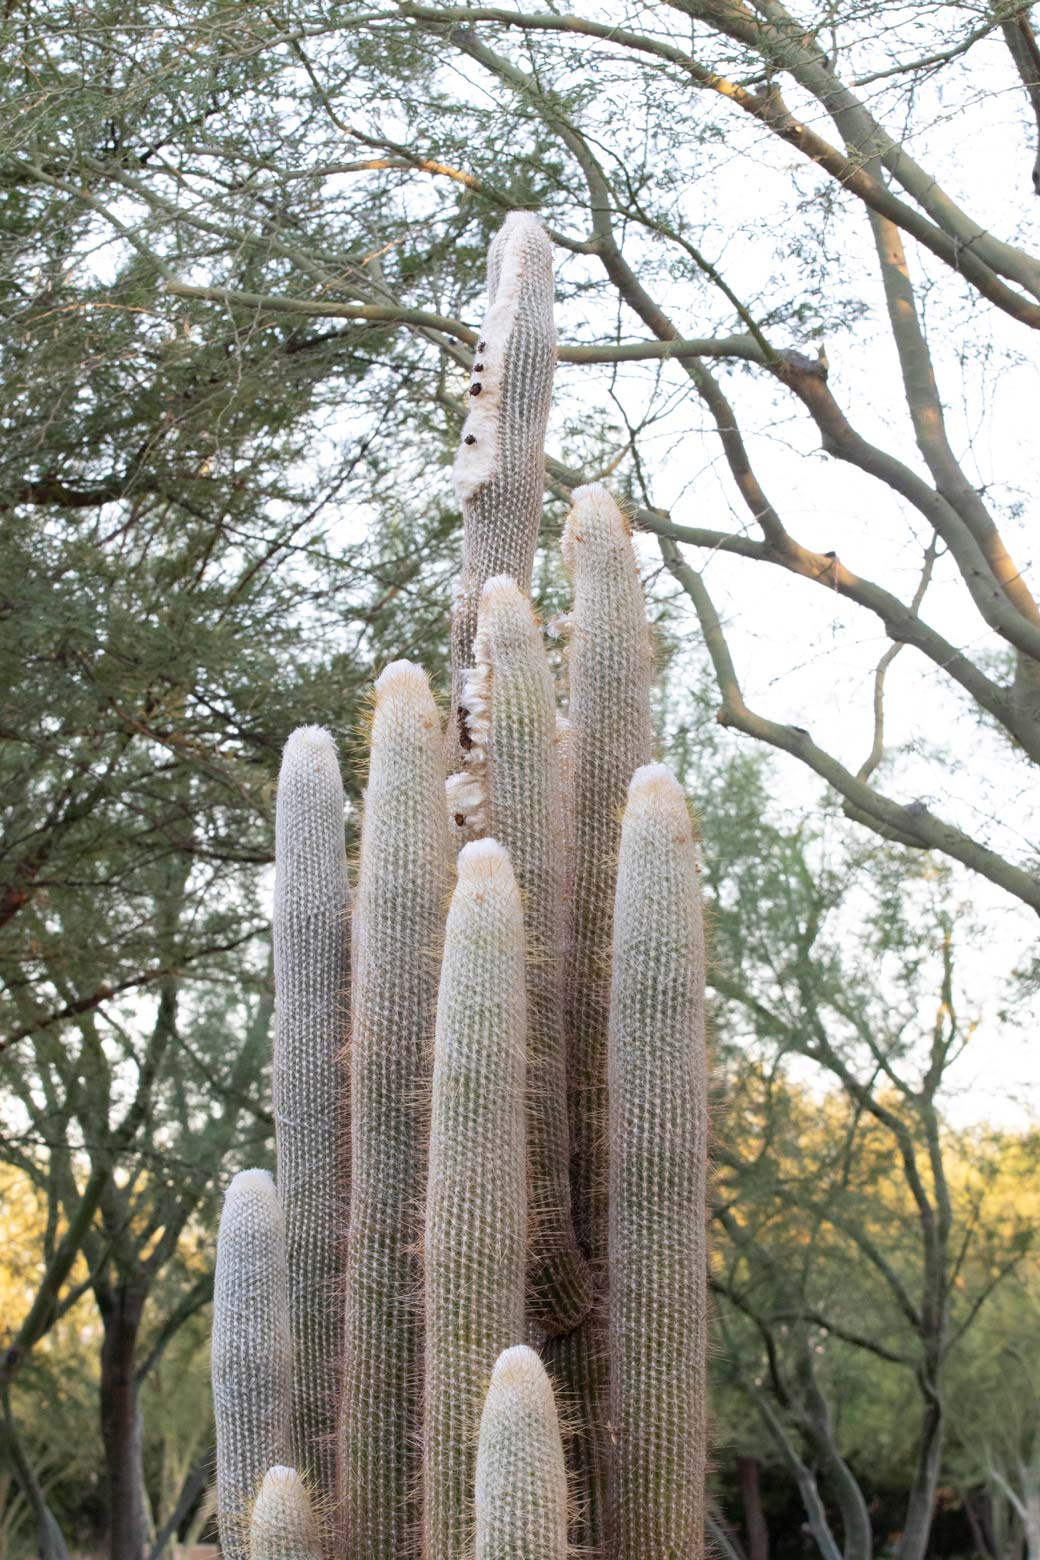 An Old Lady Cactus in the specimen bed at Sunnylands Center & Gardens.